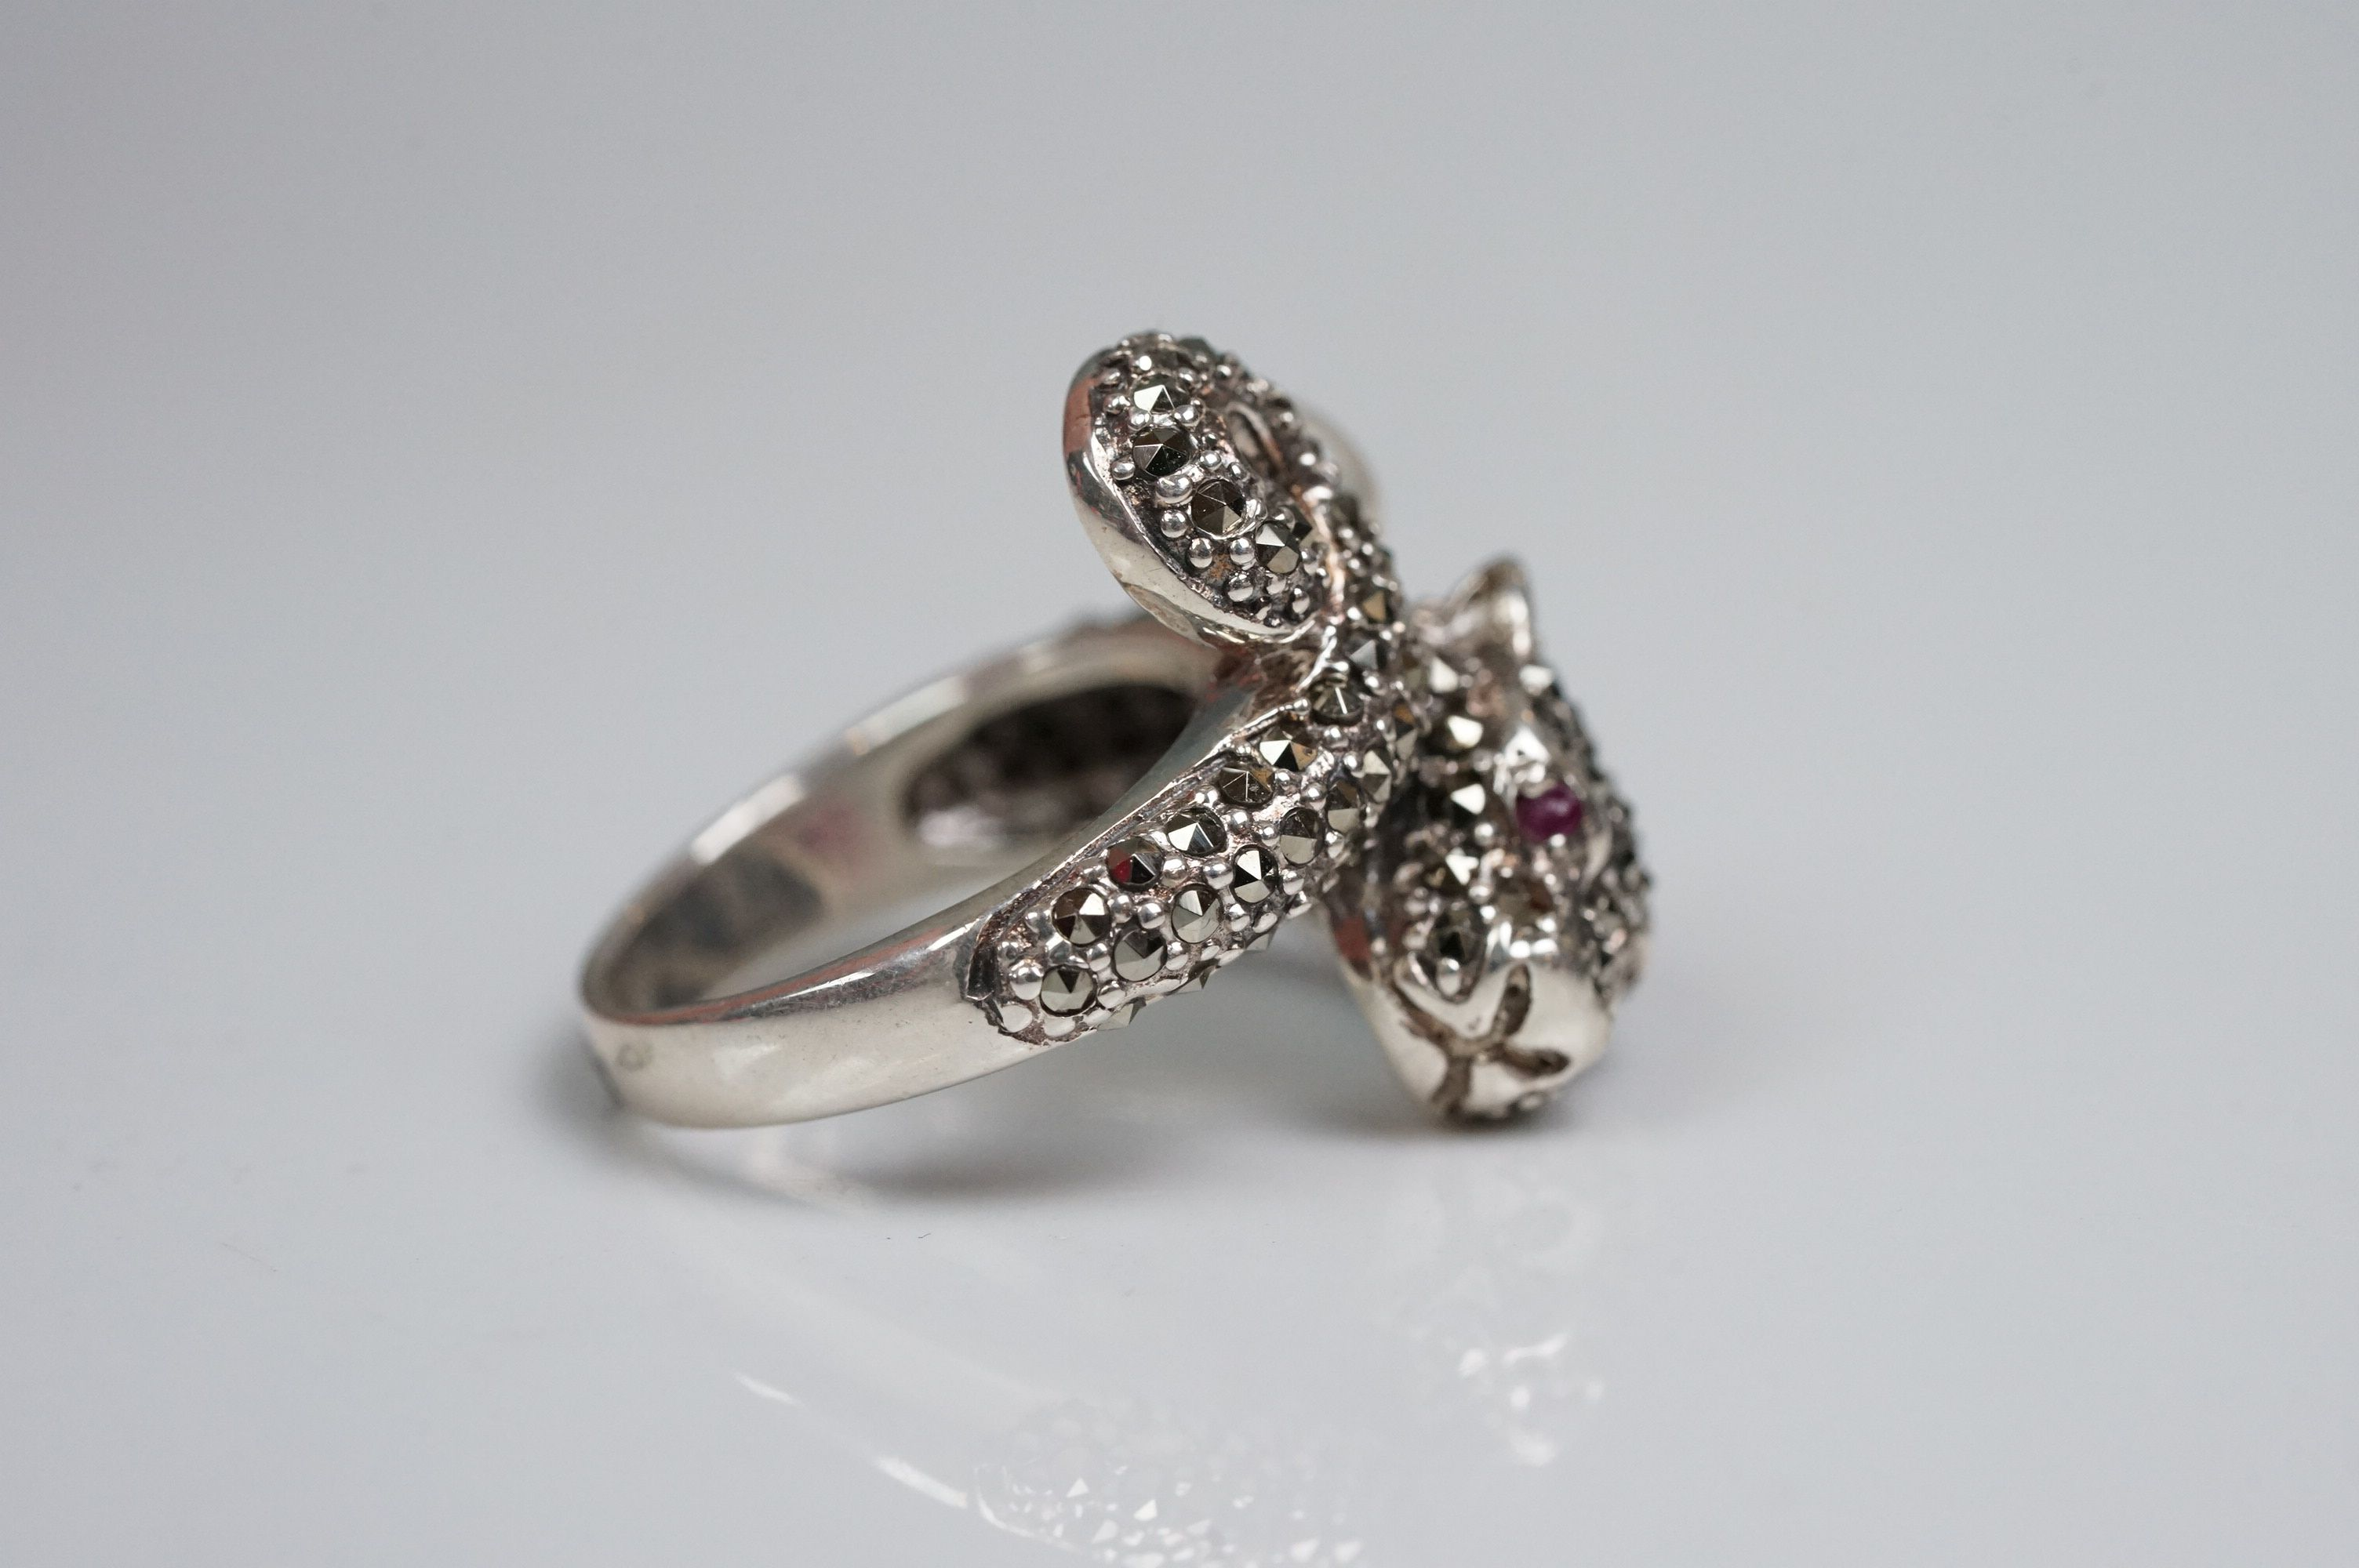 Silver panther ring, set with marcasites and ruby eyes - Image 4 of 6